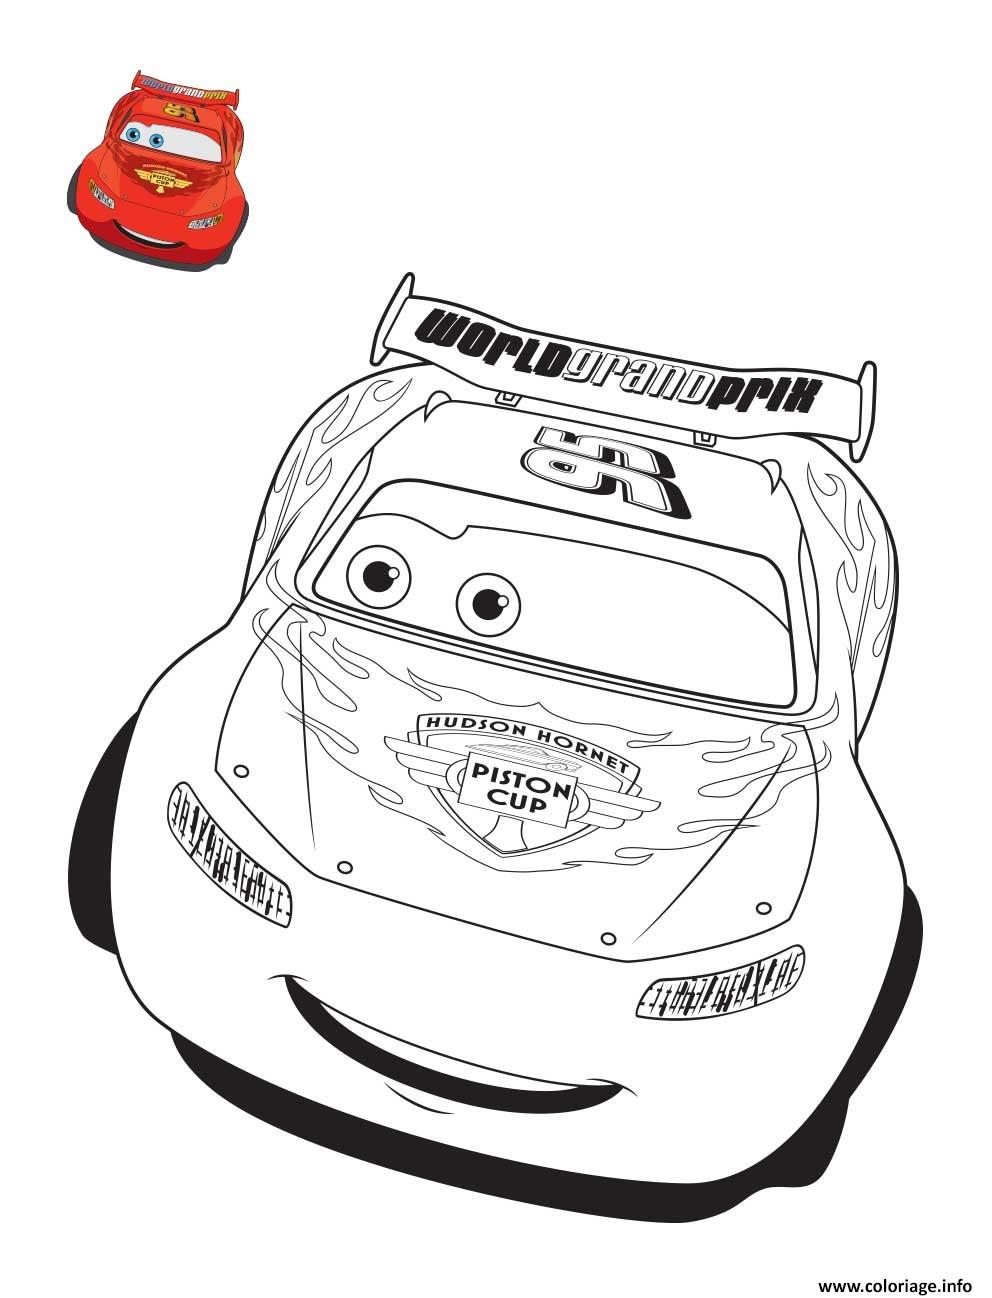 coloriage cars 3 flash mcqueen confiant pour la course de voiture. Black Bedroom Furniture Sets. Home Design Ideas